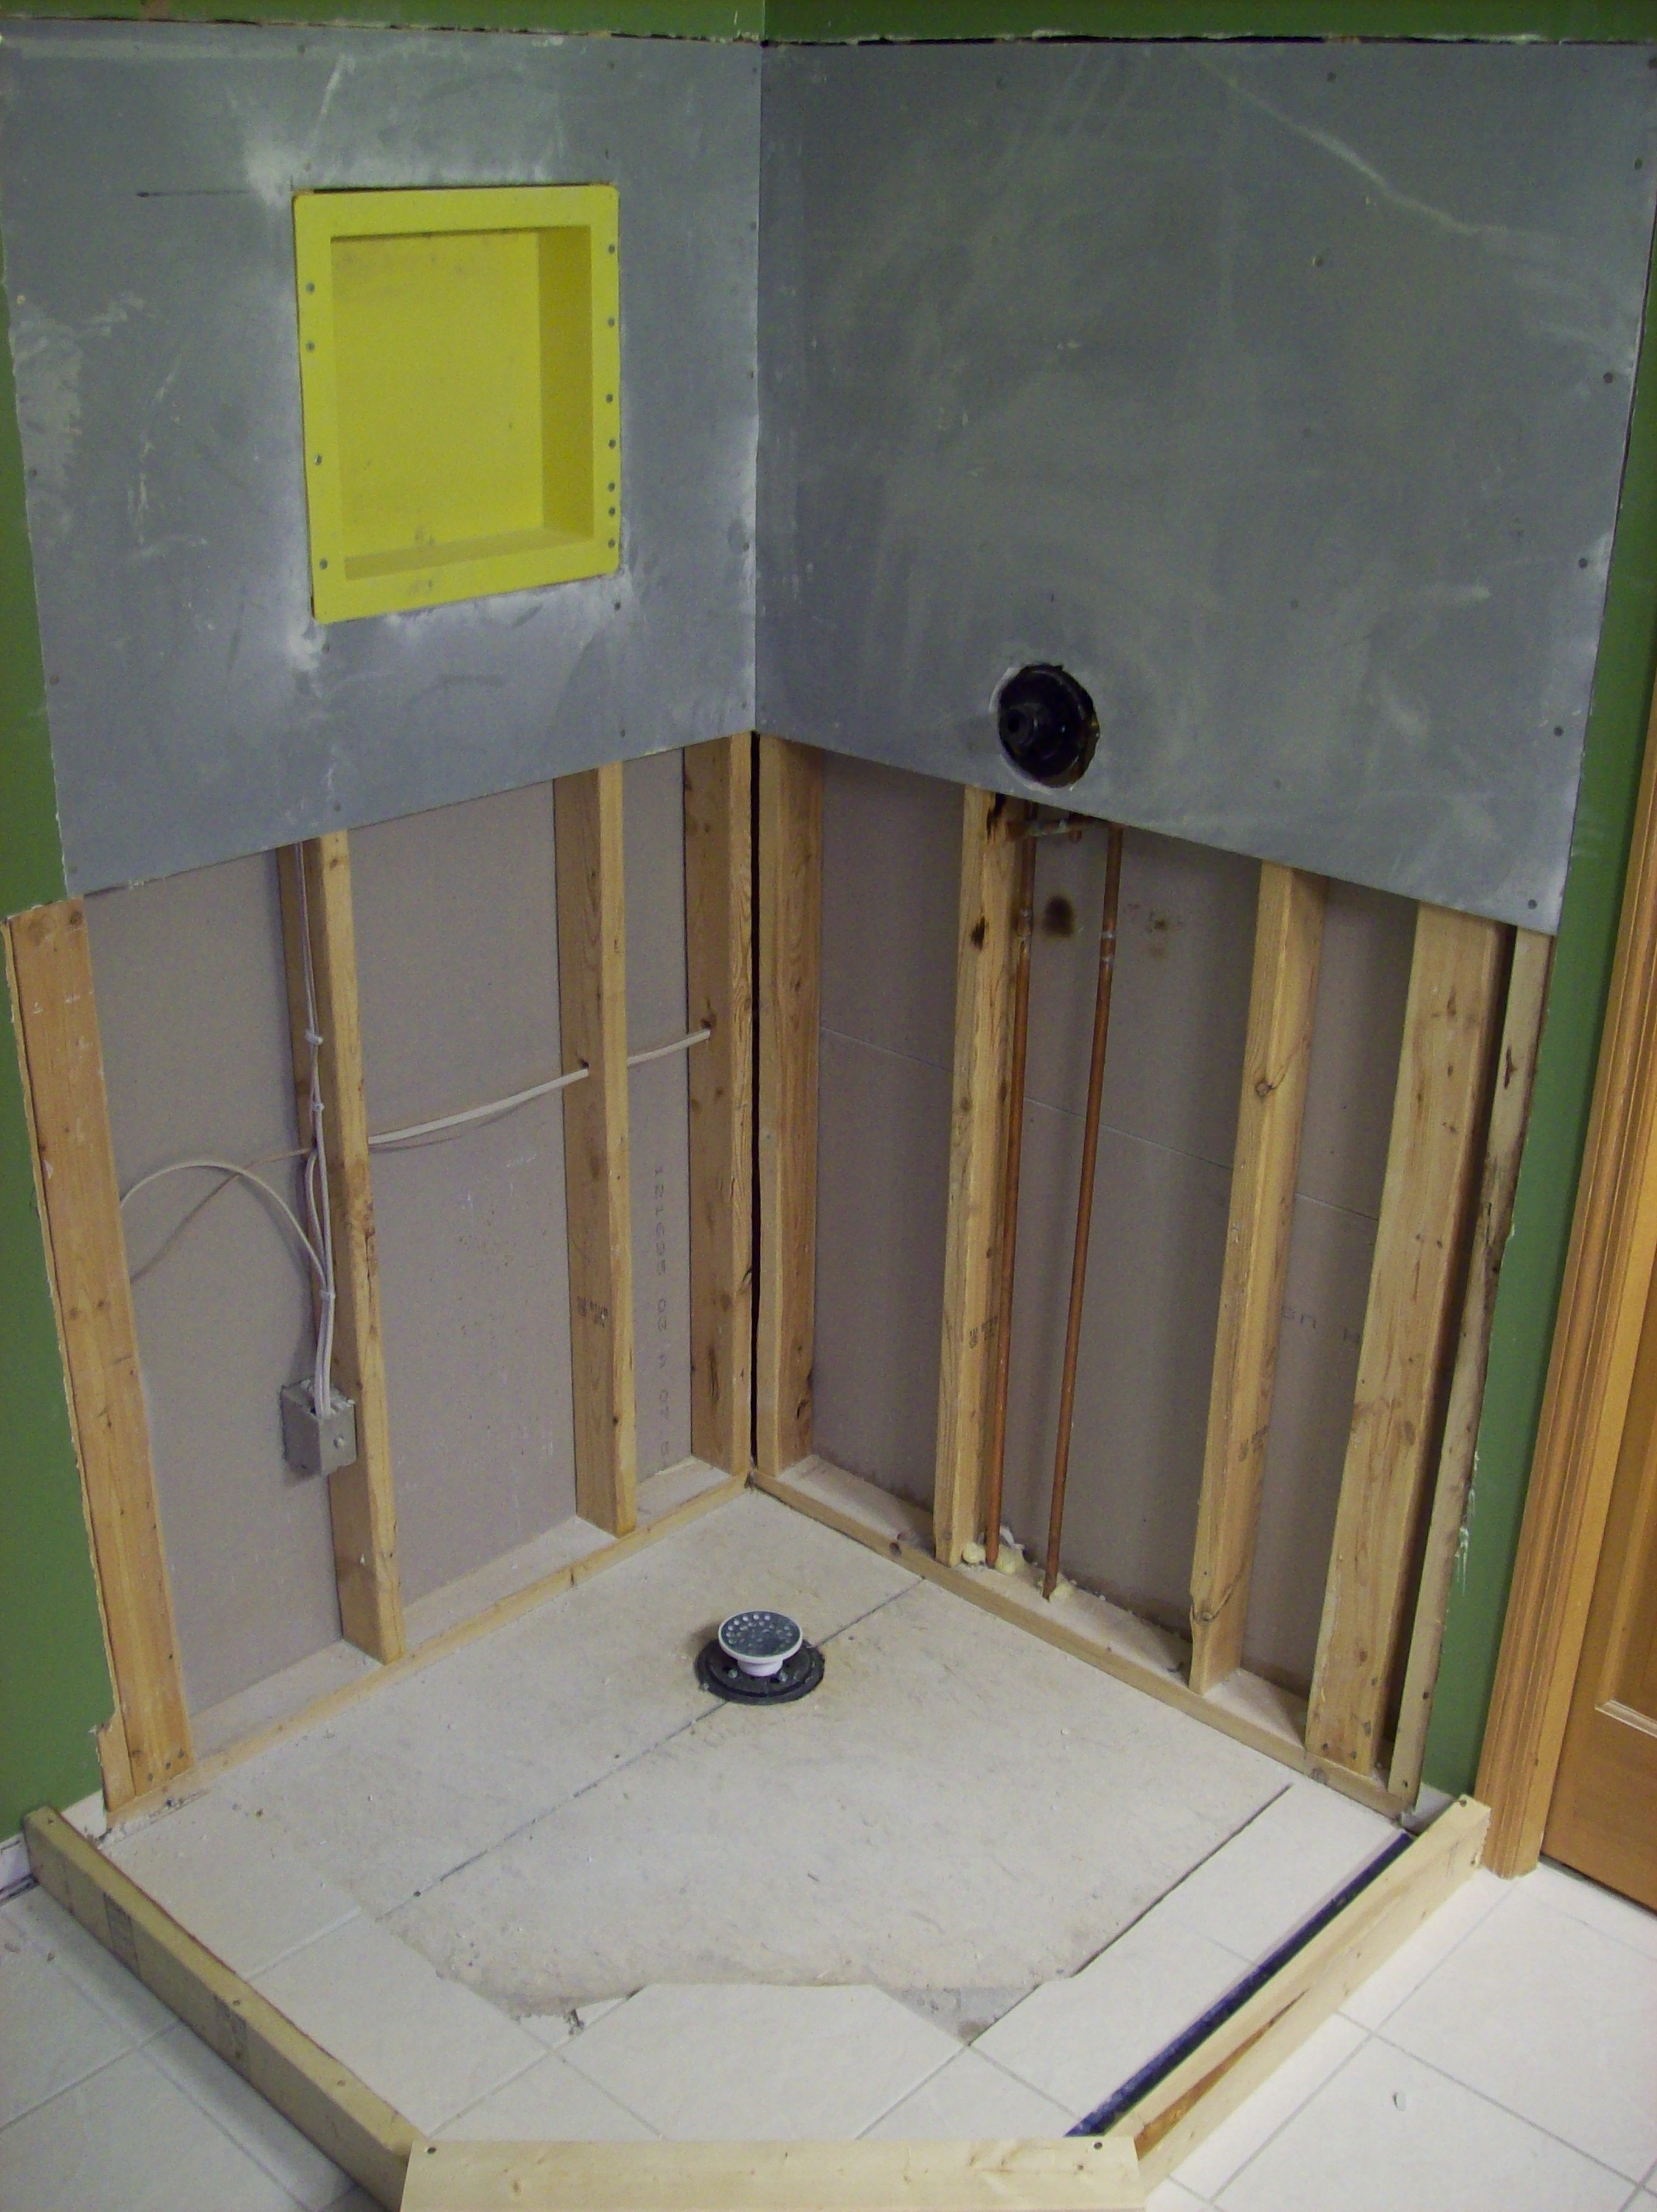 Tile shower pan installation step by step « TOUCHDOWN TILE